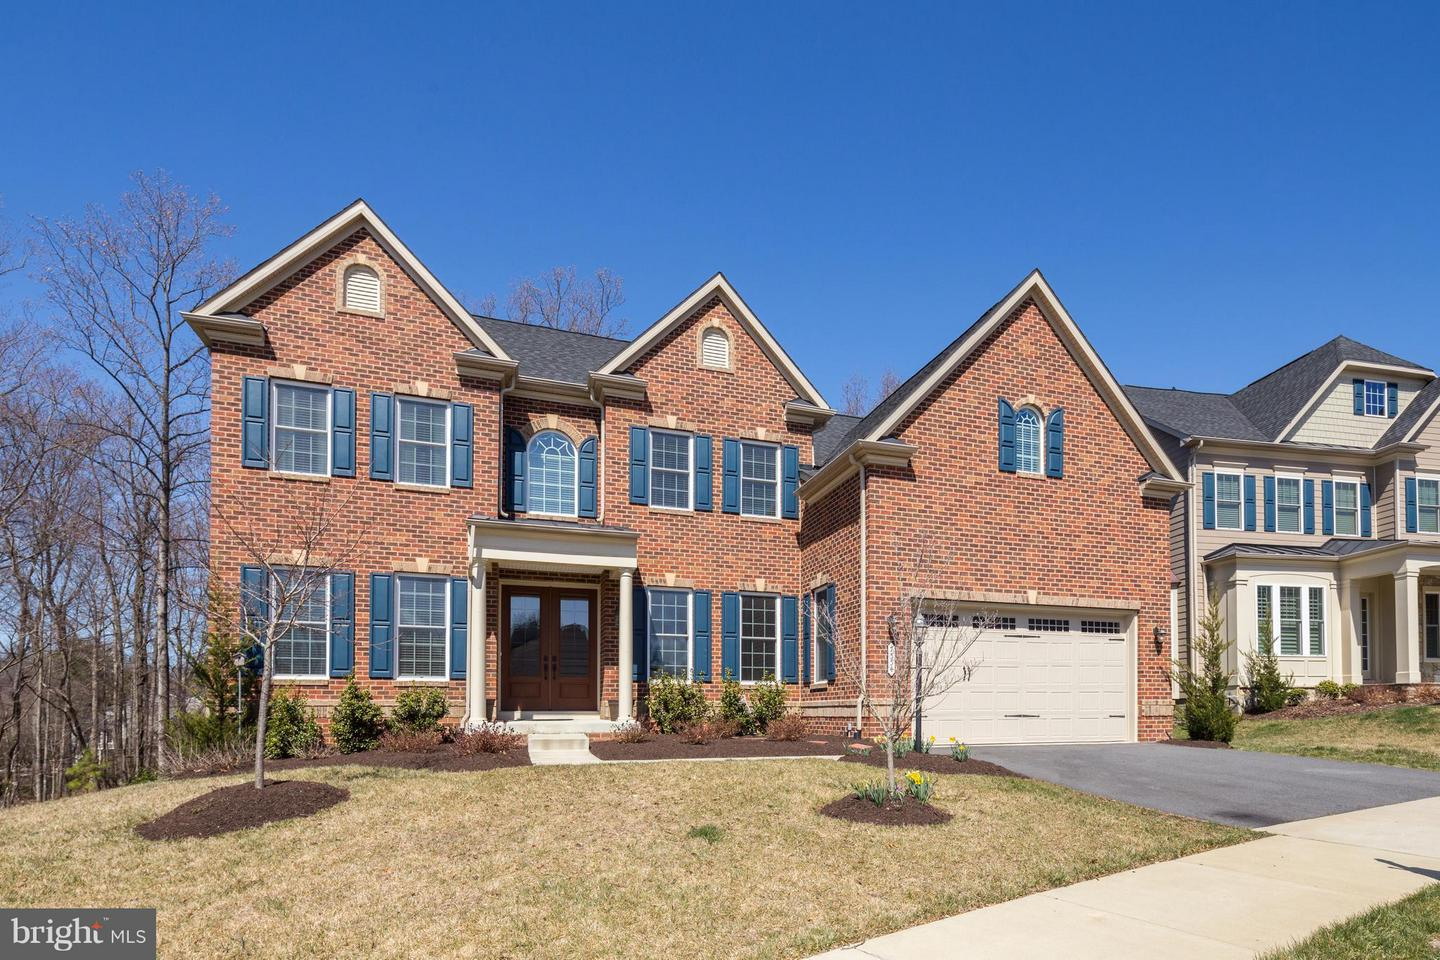 Single Family Home for Sale at 7554 Glen Pointe Court 7554 Glen Pointe Court Springfield, Virginia 22153 United States